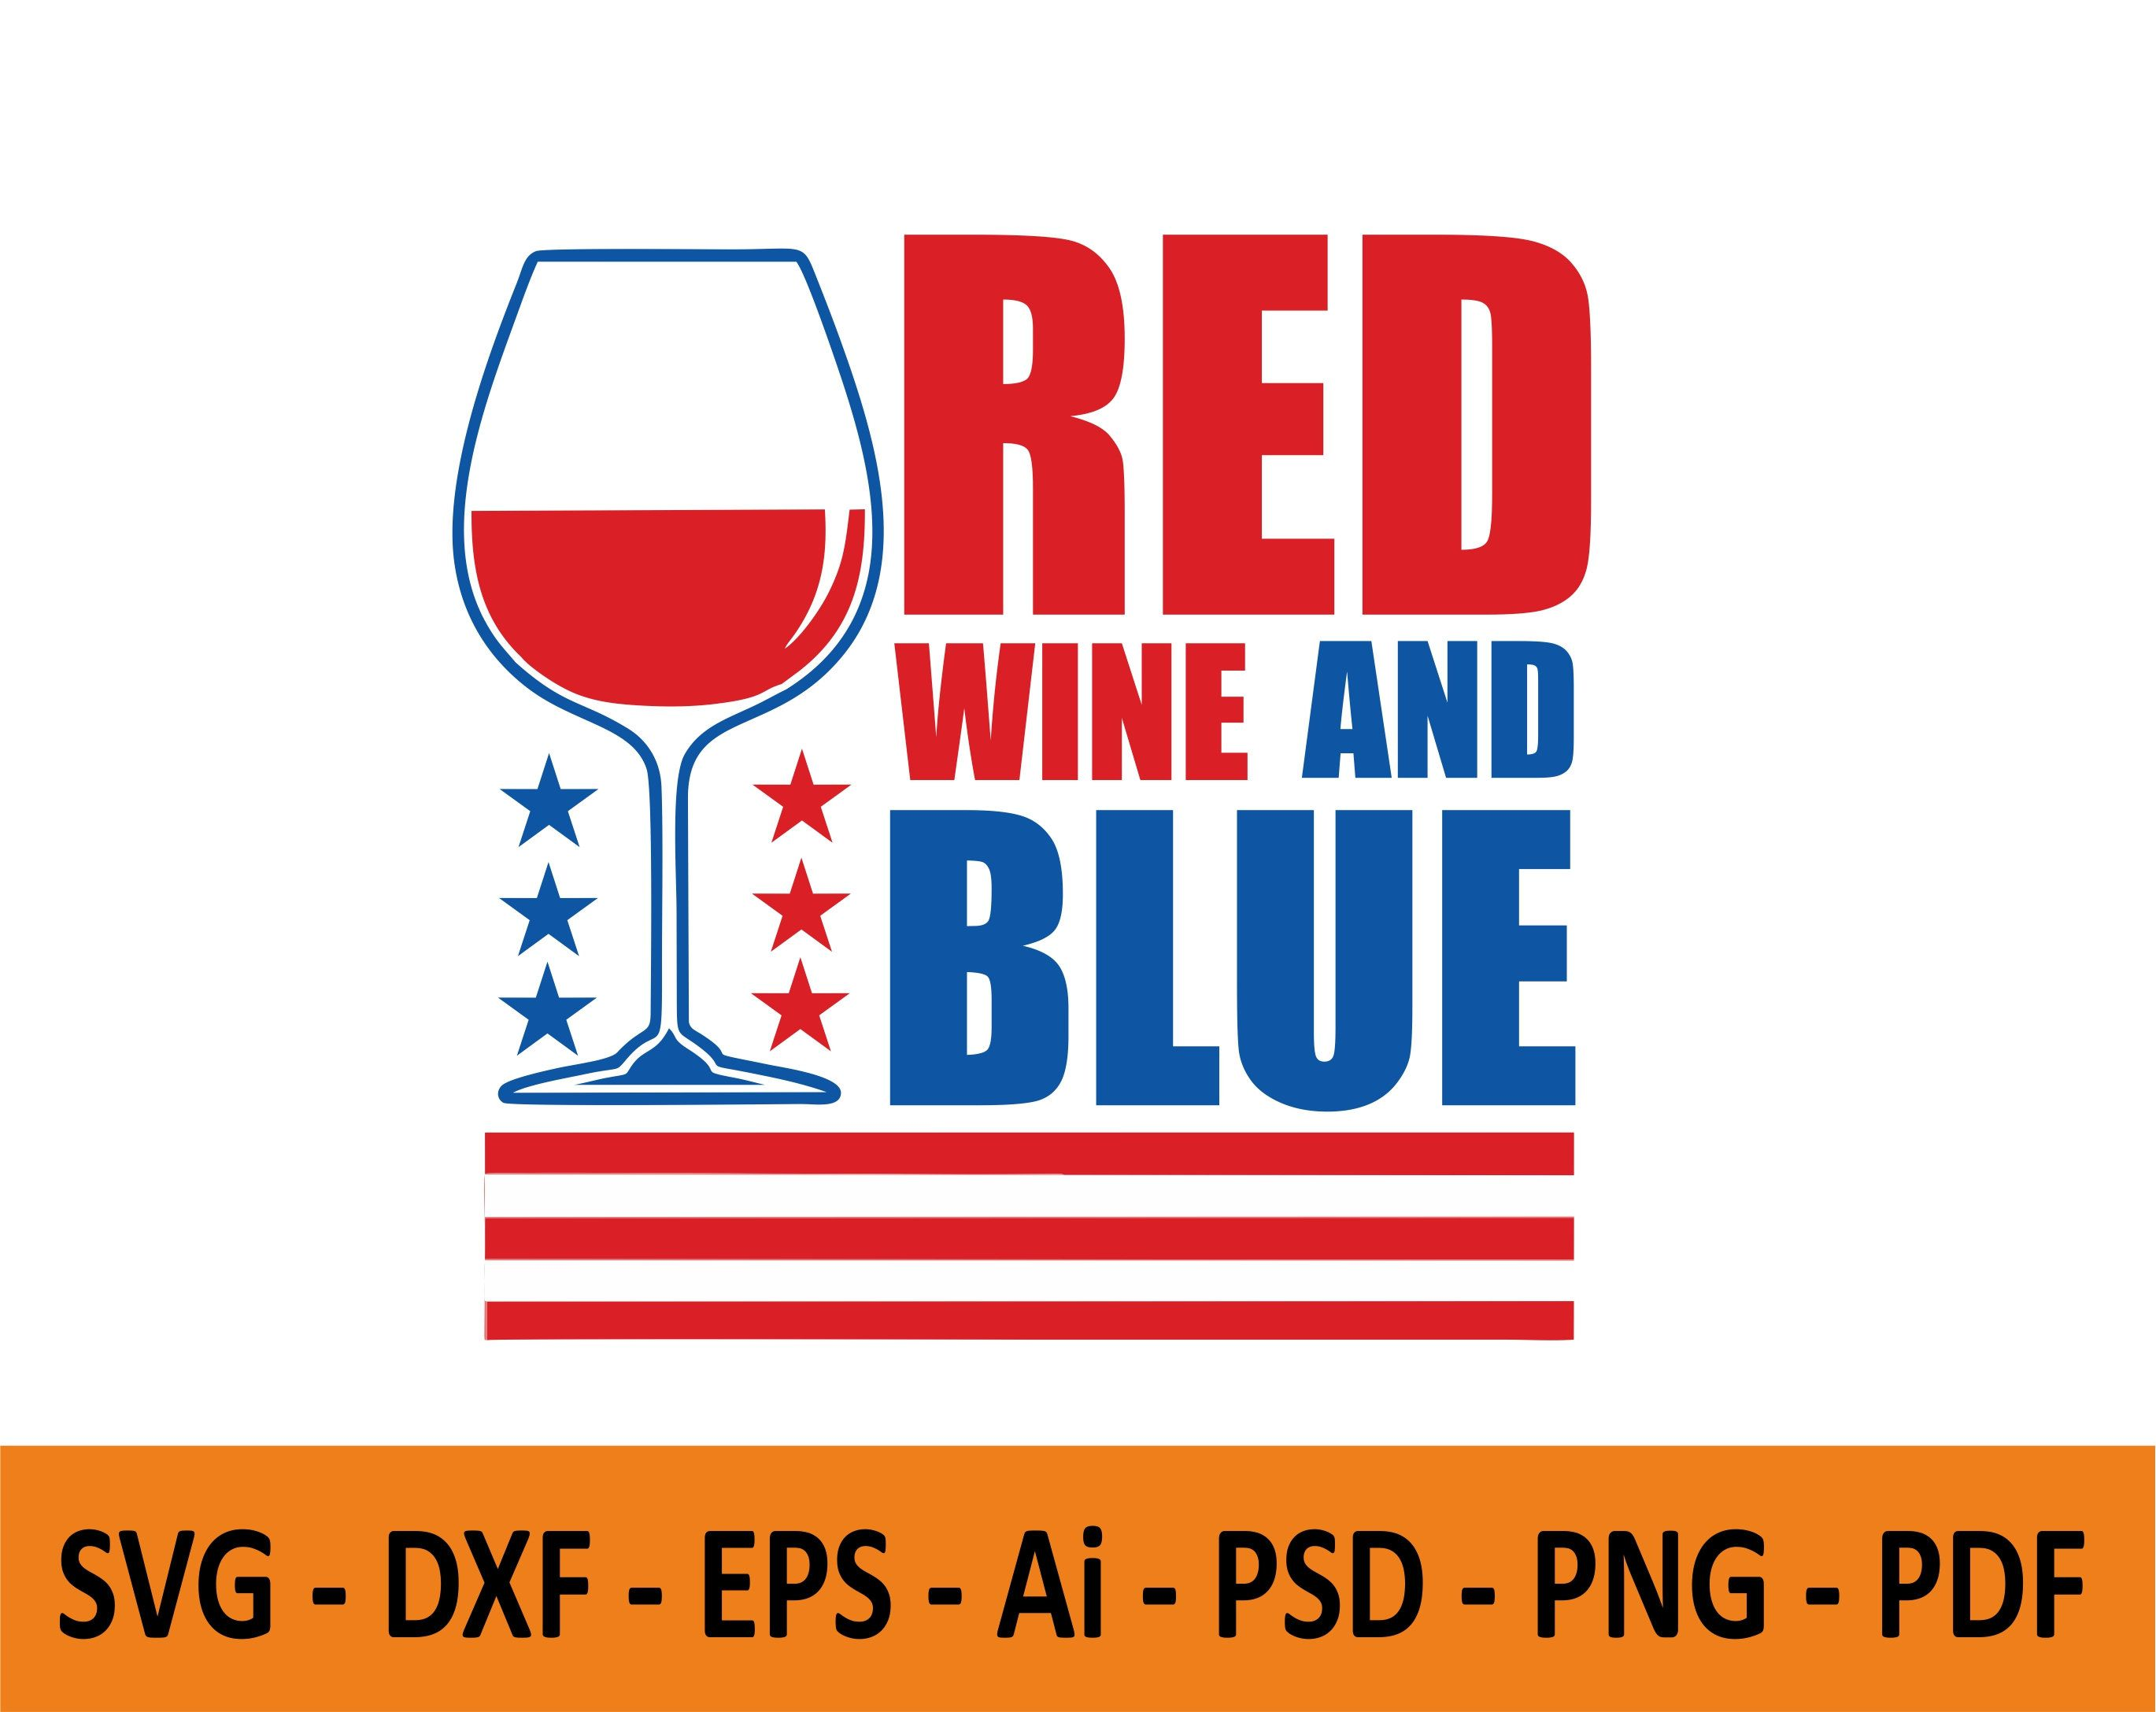 Wine Usa Flag Patriotic Svg 4th Of July Svg Red Wine And Blue Svg Usa Independence Day Memorial Day Fourth Of July Svg Eps P Usa Flag Fourth Of July Svg